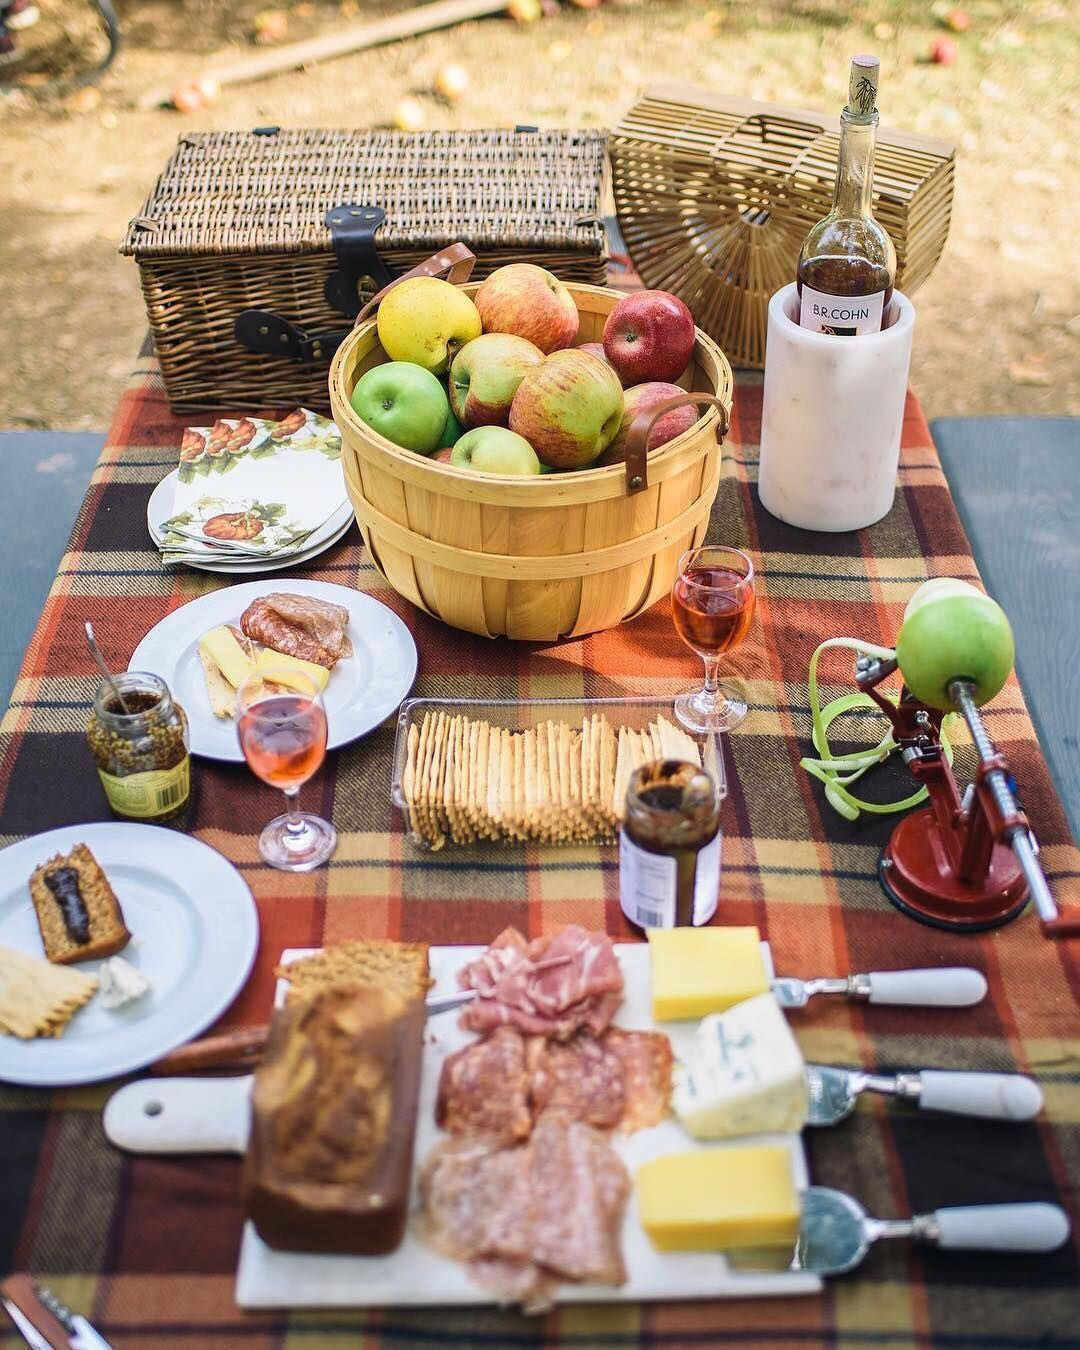 This Is Where We Want To Be. Beautiful Picnic Spread